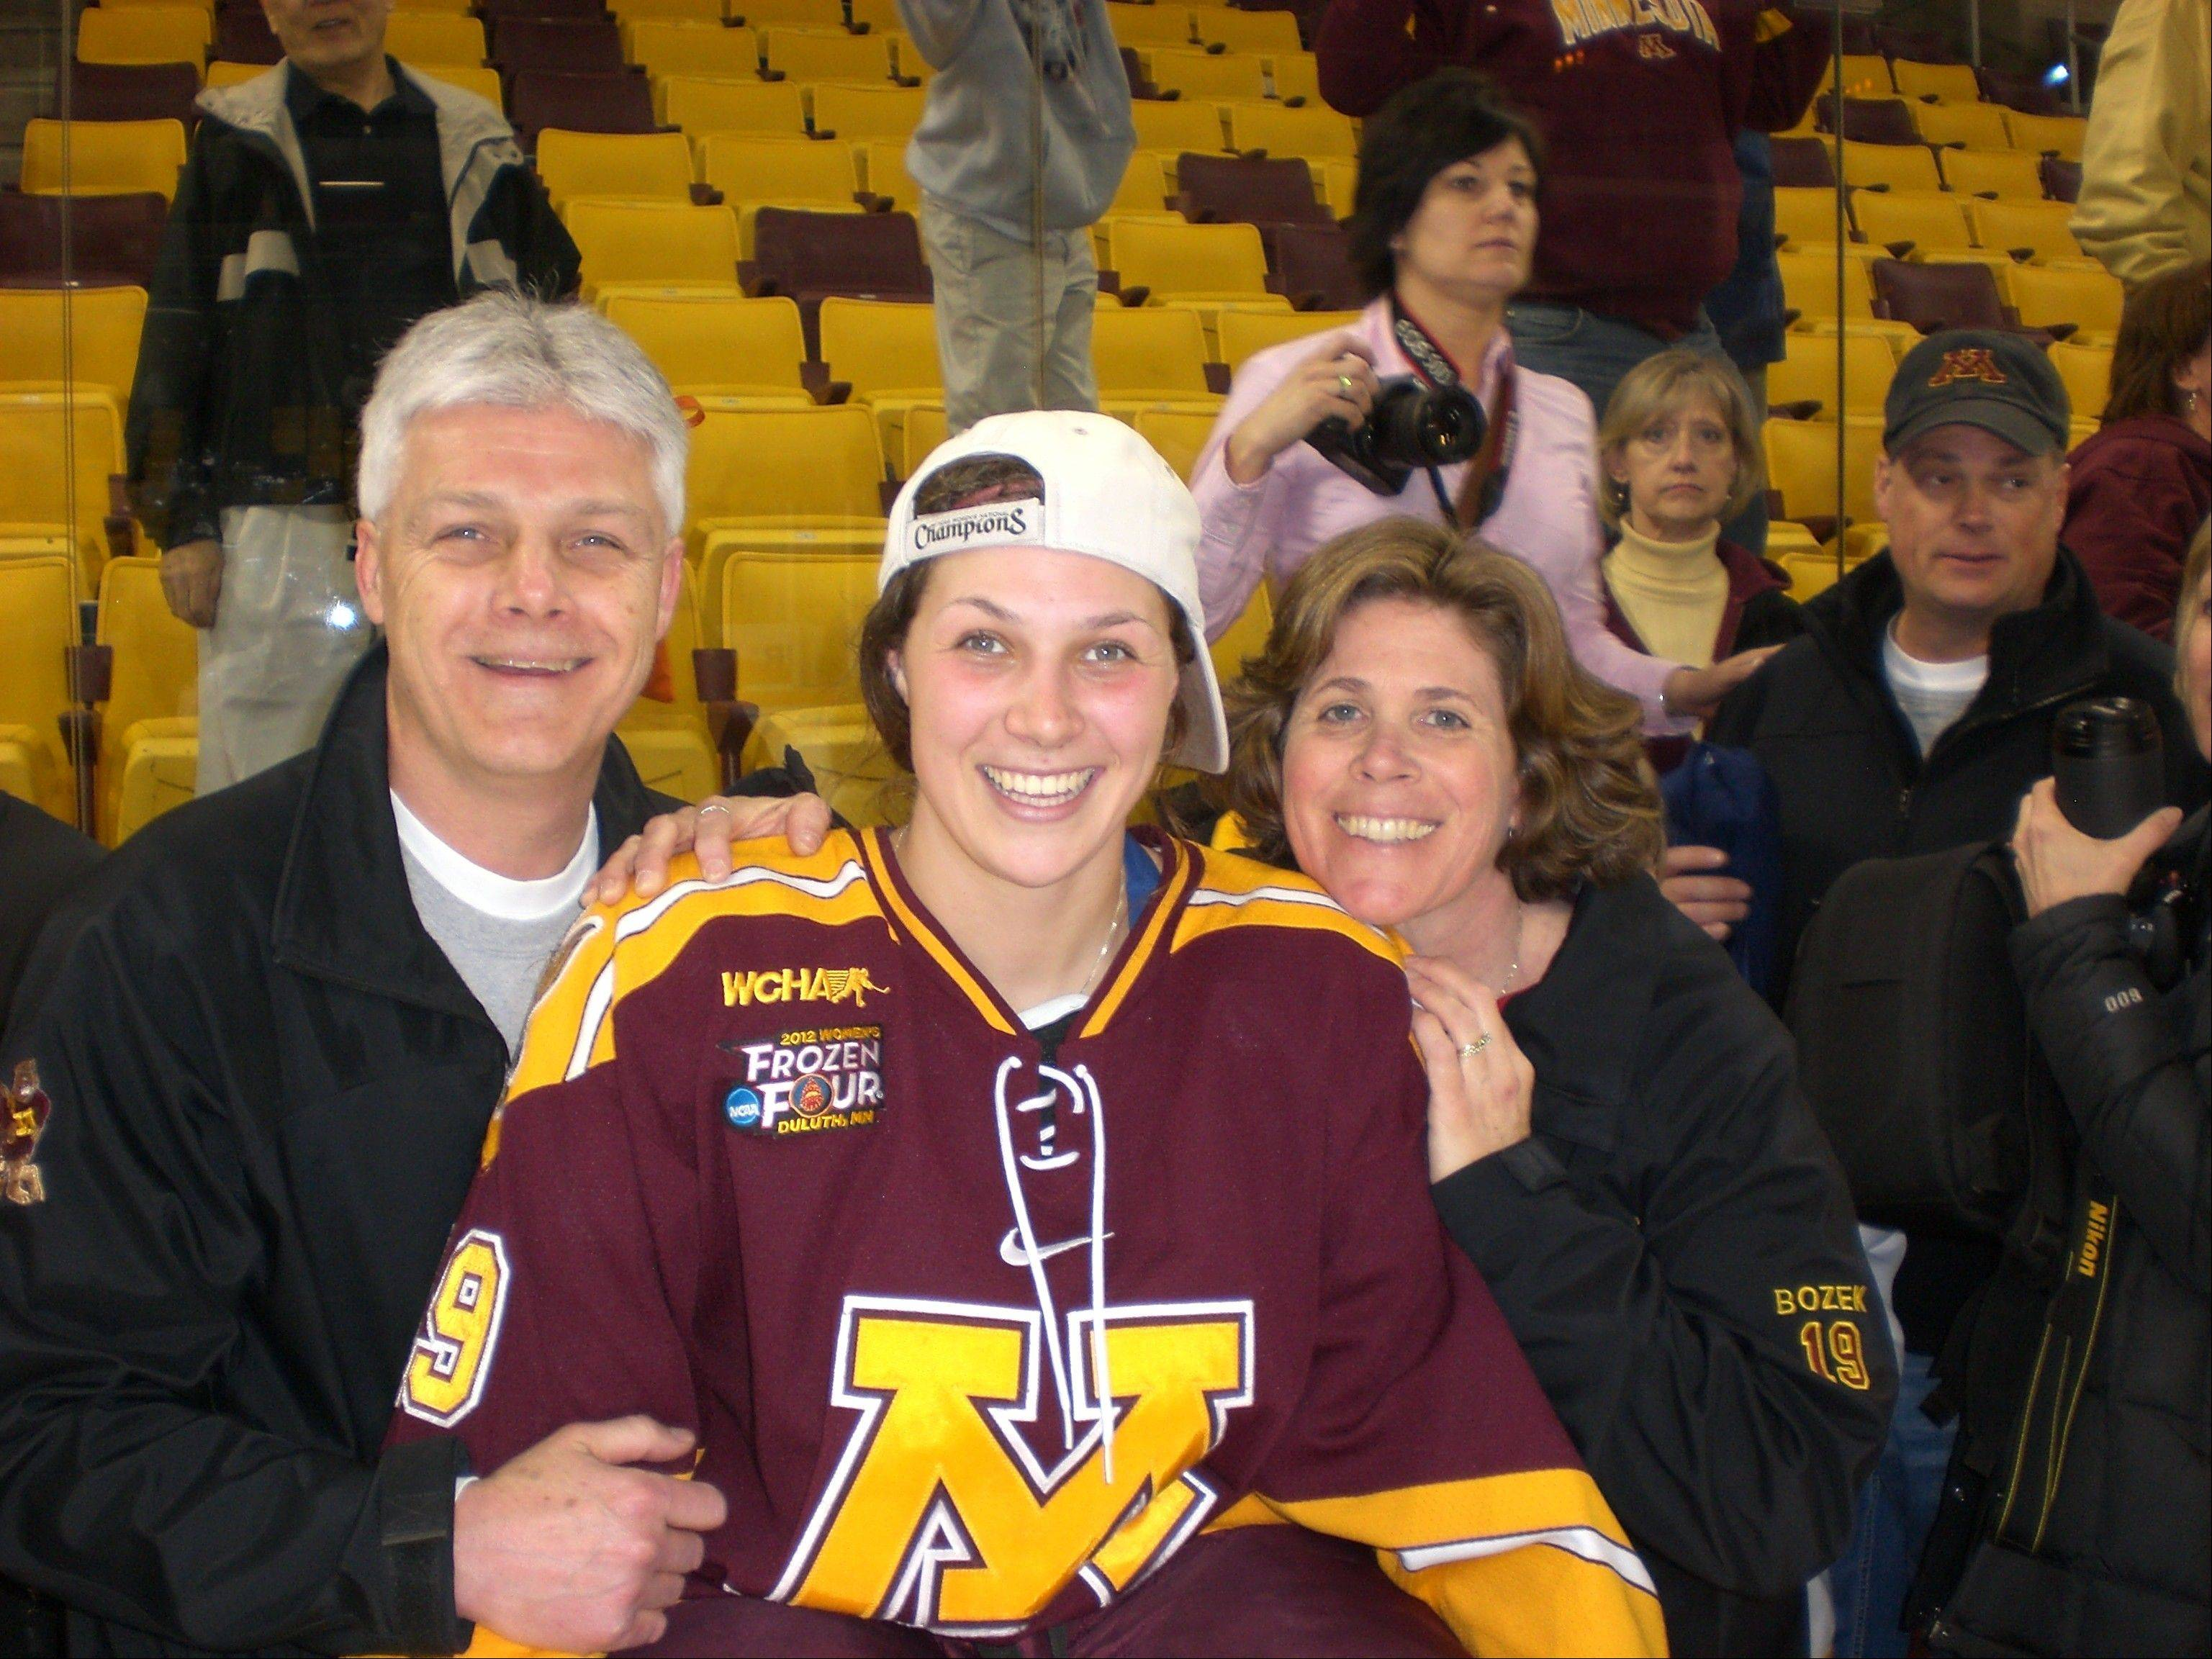 Buffalo Grove native Megan Bozek poses with parents Tom and Patti Bozek after the 2012 International Ice Hockey Federation Women's World Championship in Burlington, Vt.